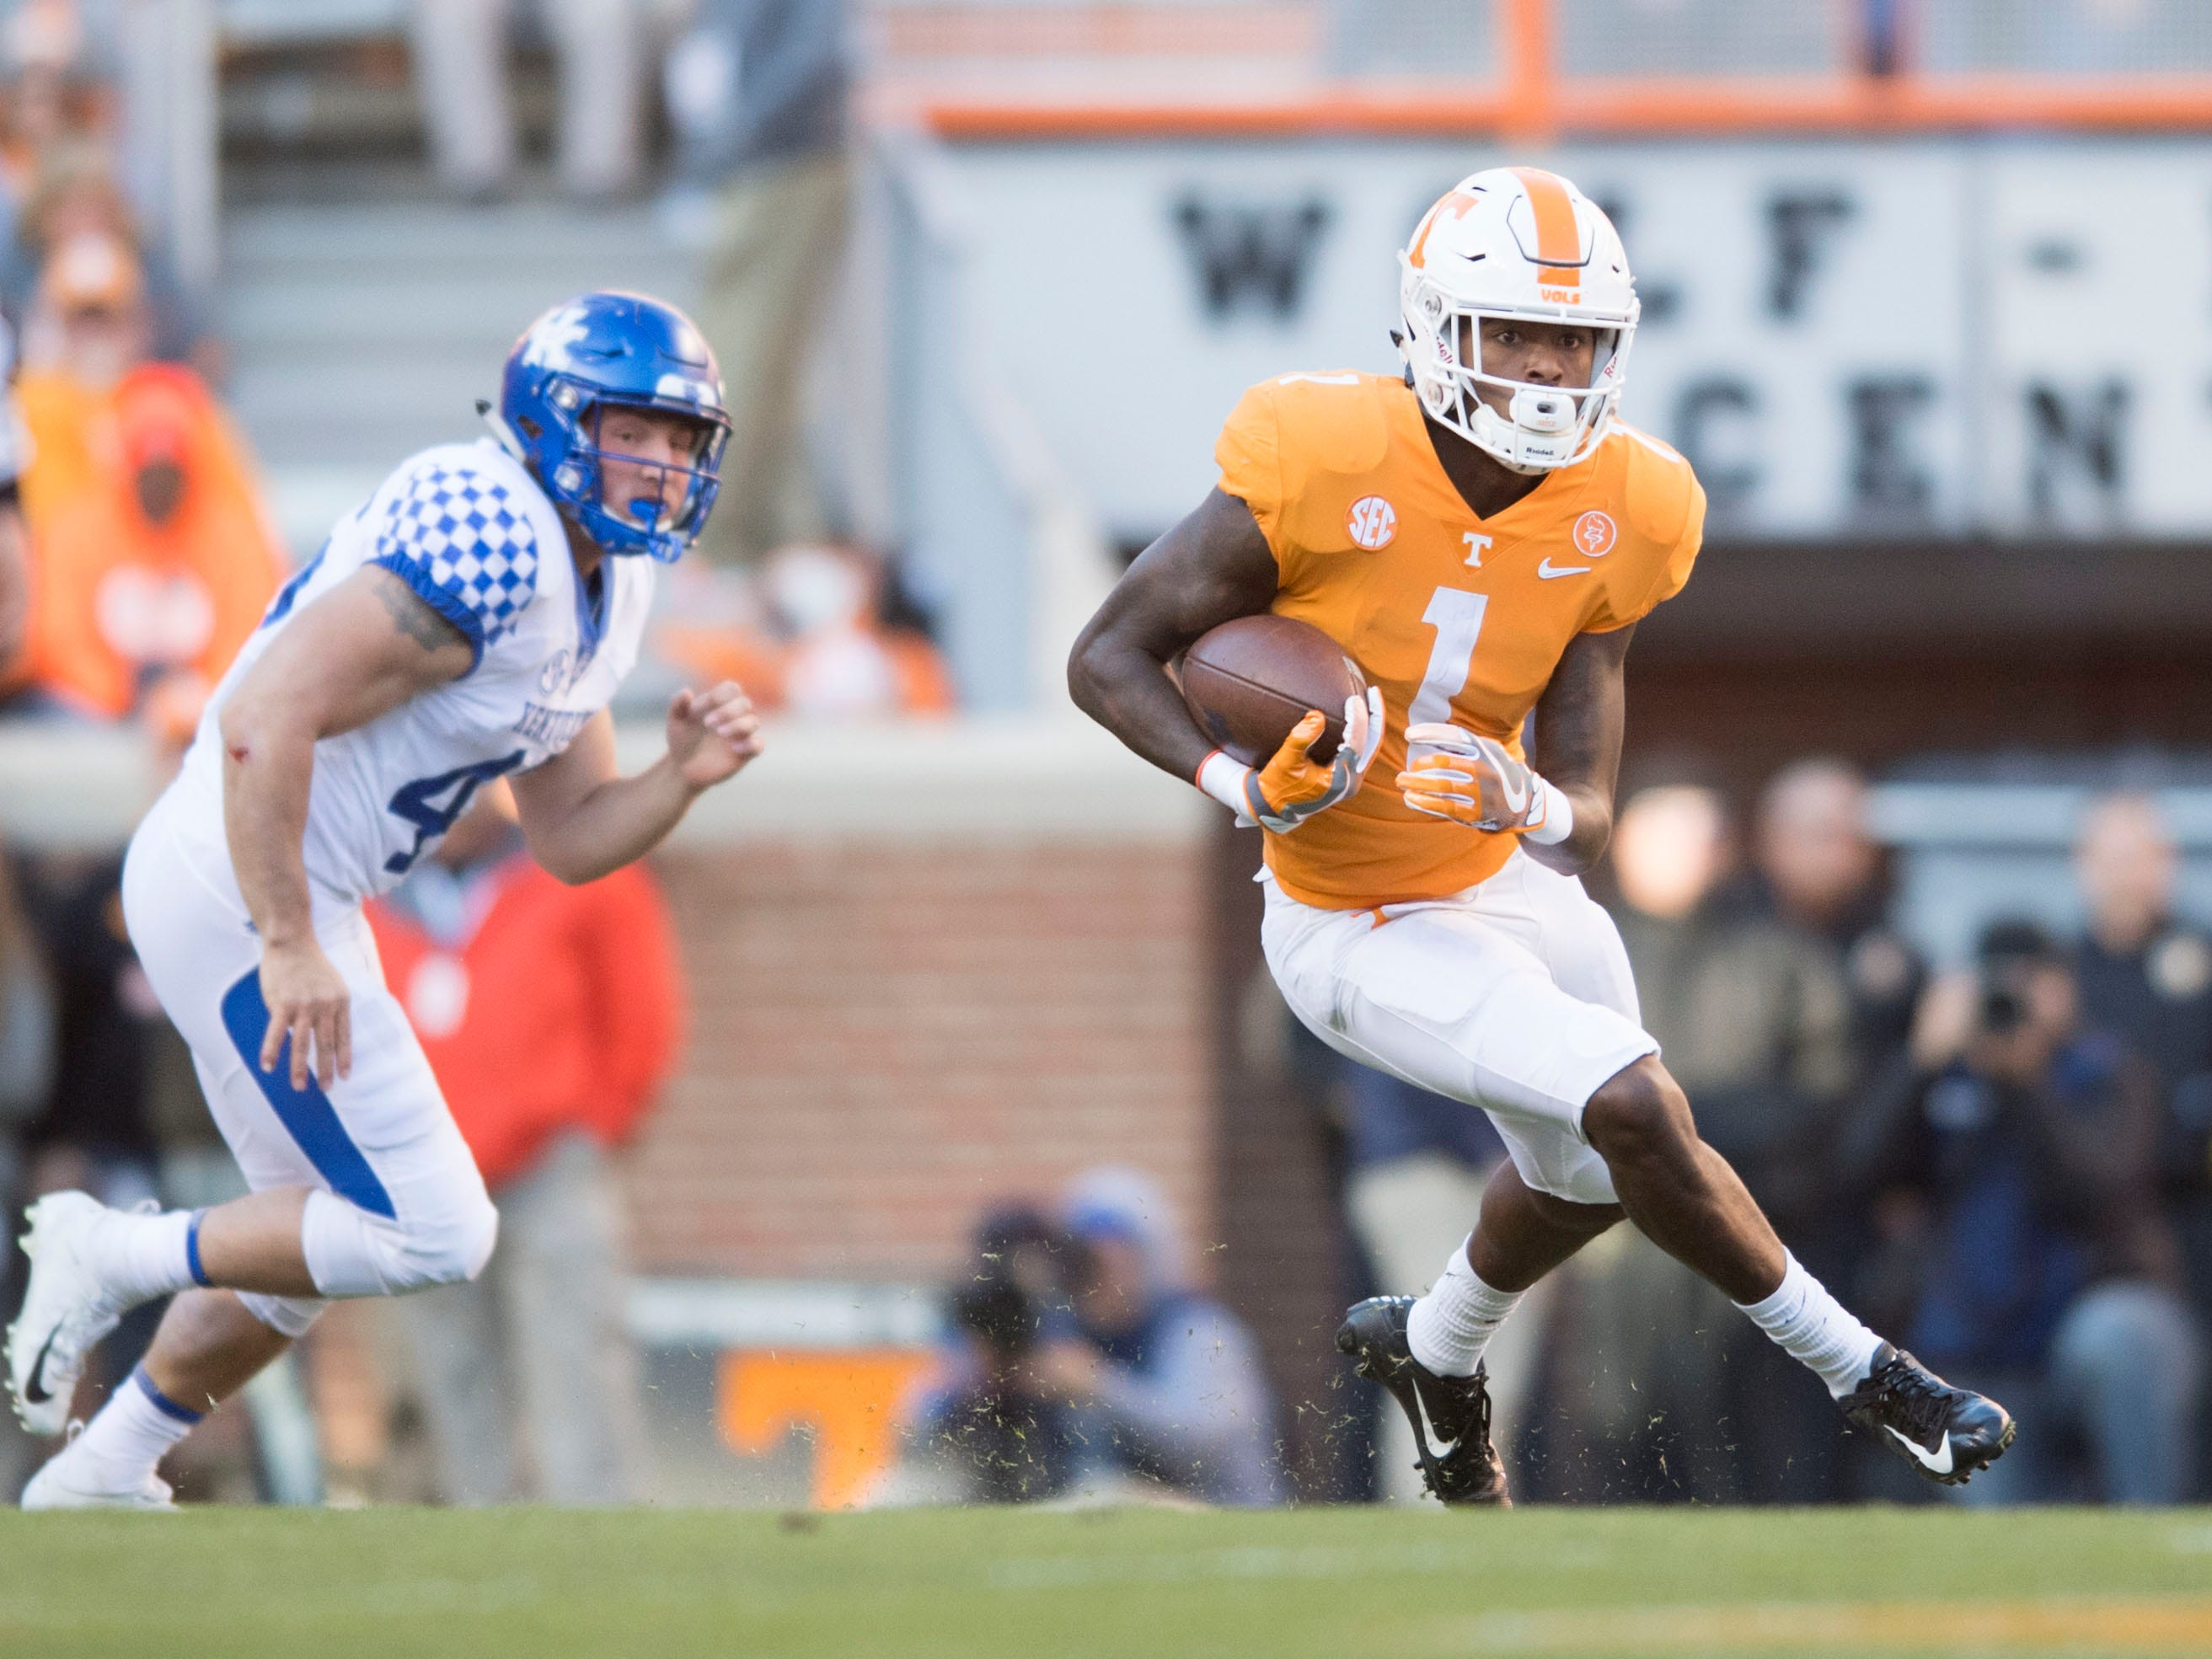 Tennessee wide receiver Marquez Callaway (1) on the kick-off return during a game between Tennessee and Kentucky at Neyland Stadium in Knoxville, Tennessee on Saturday, November 10, 2018.